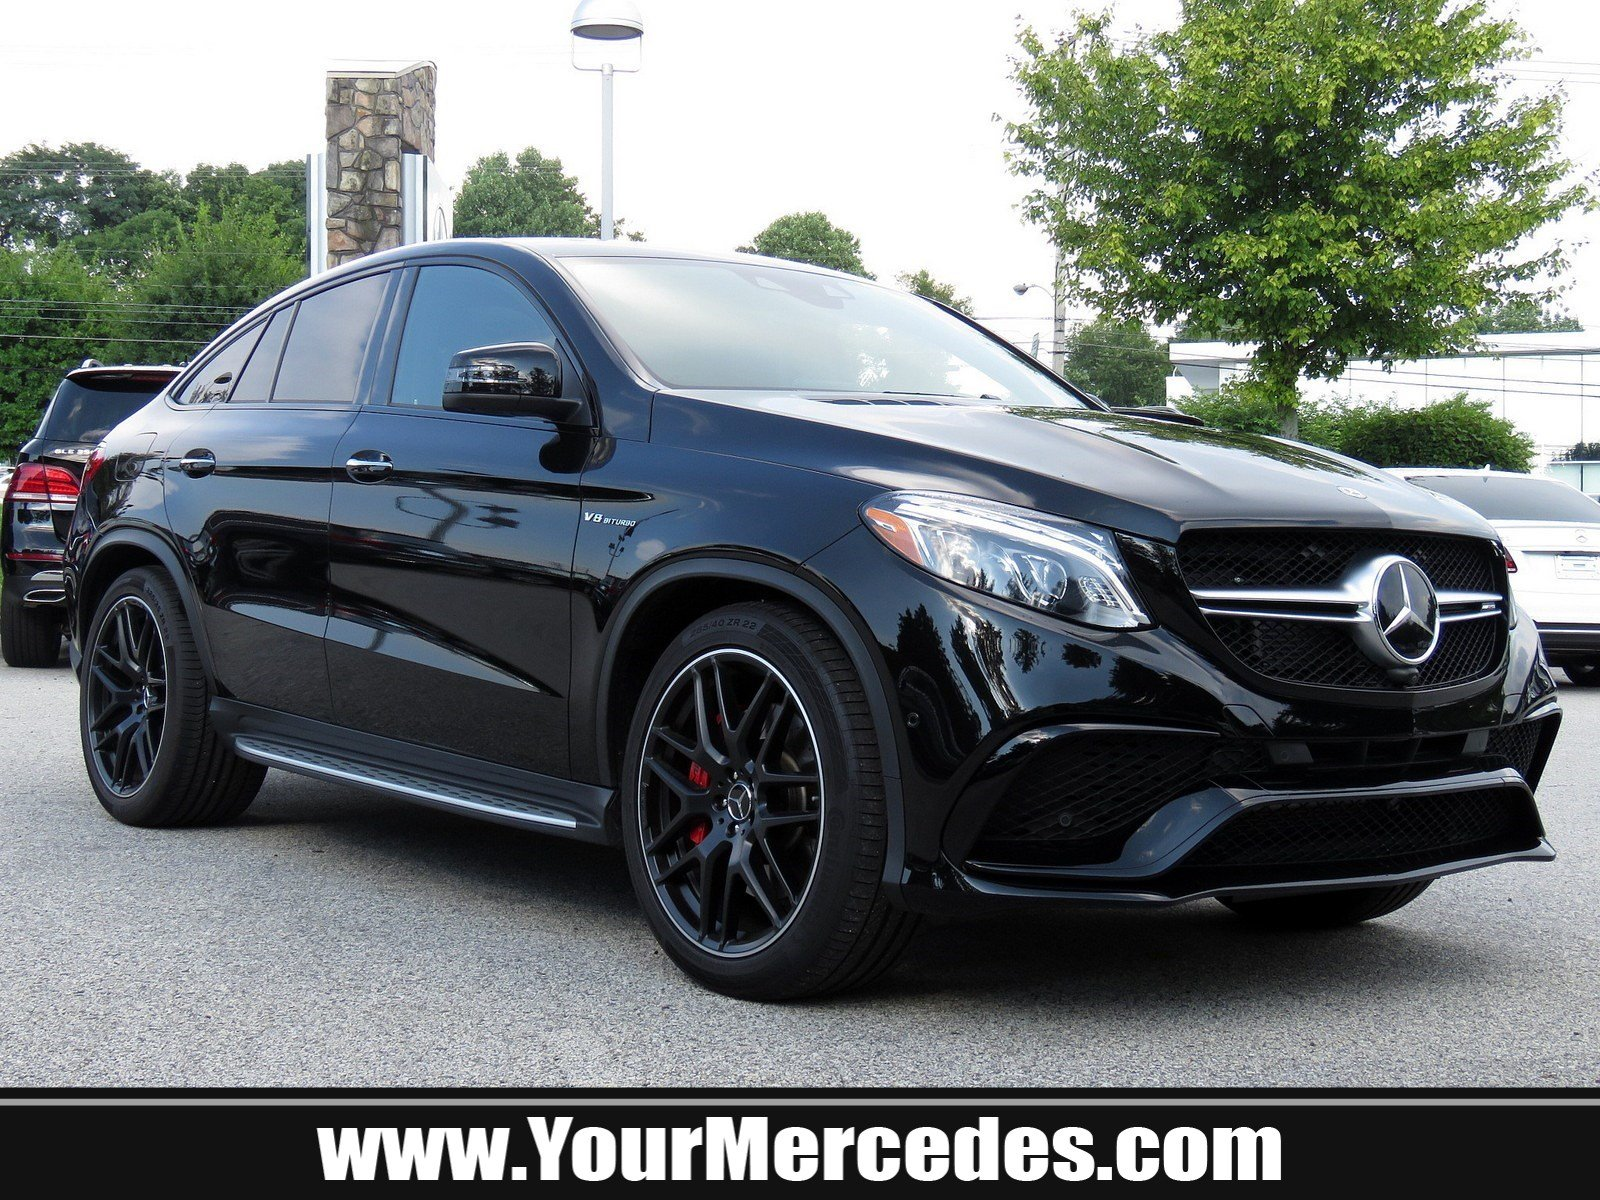 Pre Owned 2018 Mercedes Benz GLE AMG GLE 63 S Coupe Coupe in Fort